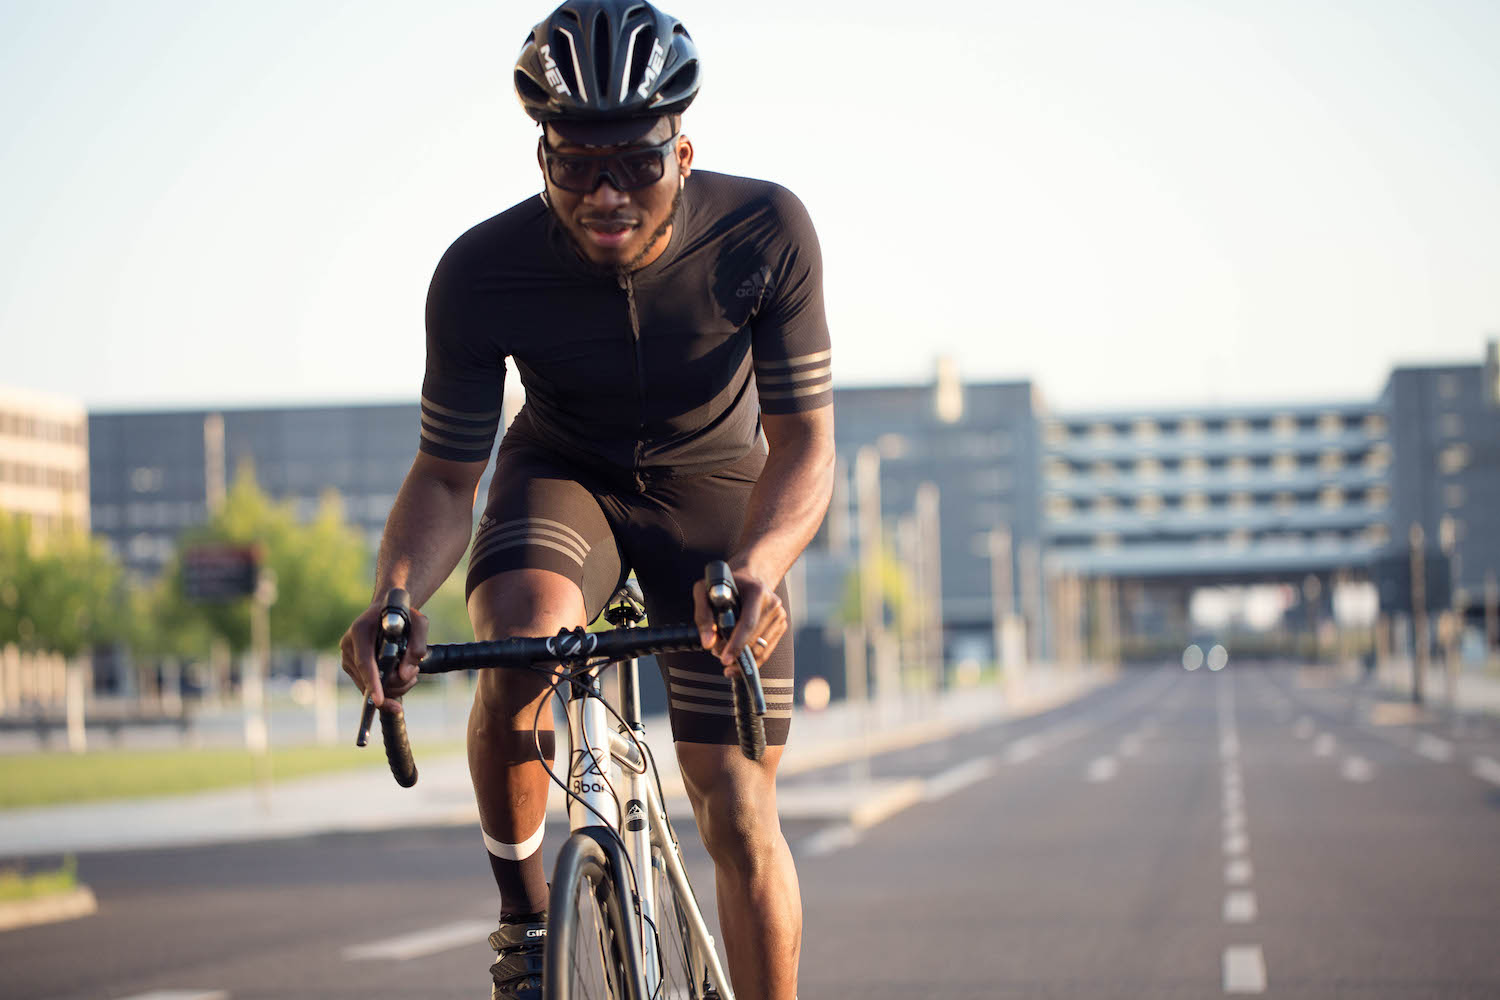 8bar adidas cycling apparel photo michael kleber 25 - Qudus testet Neues von adidas cycling